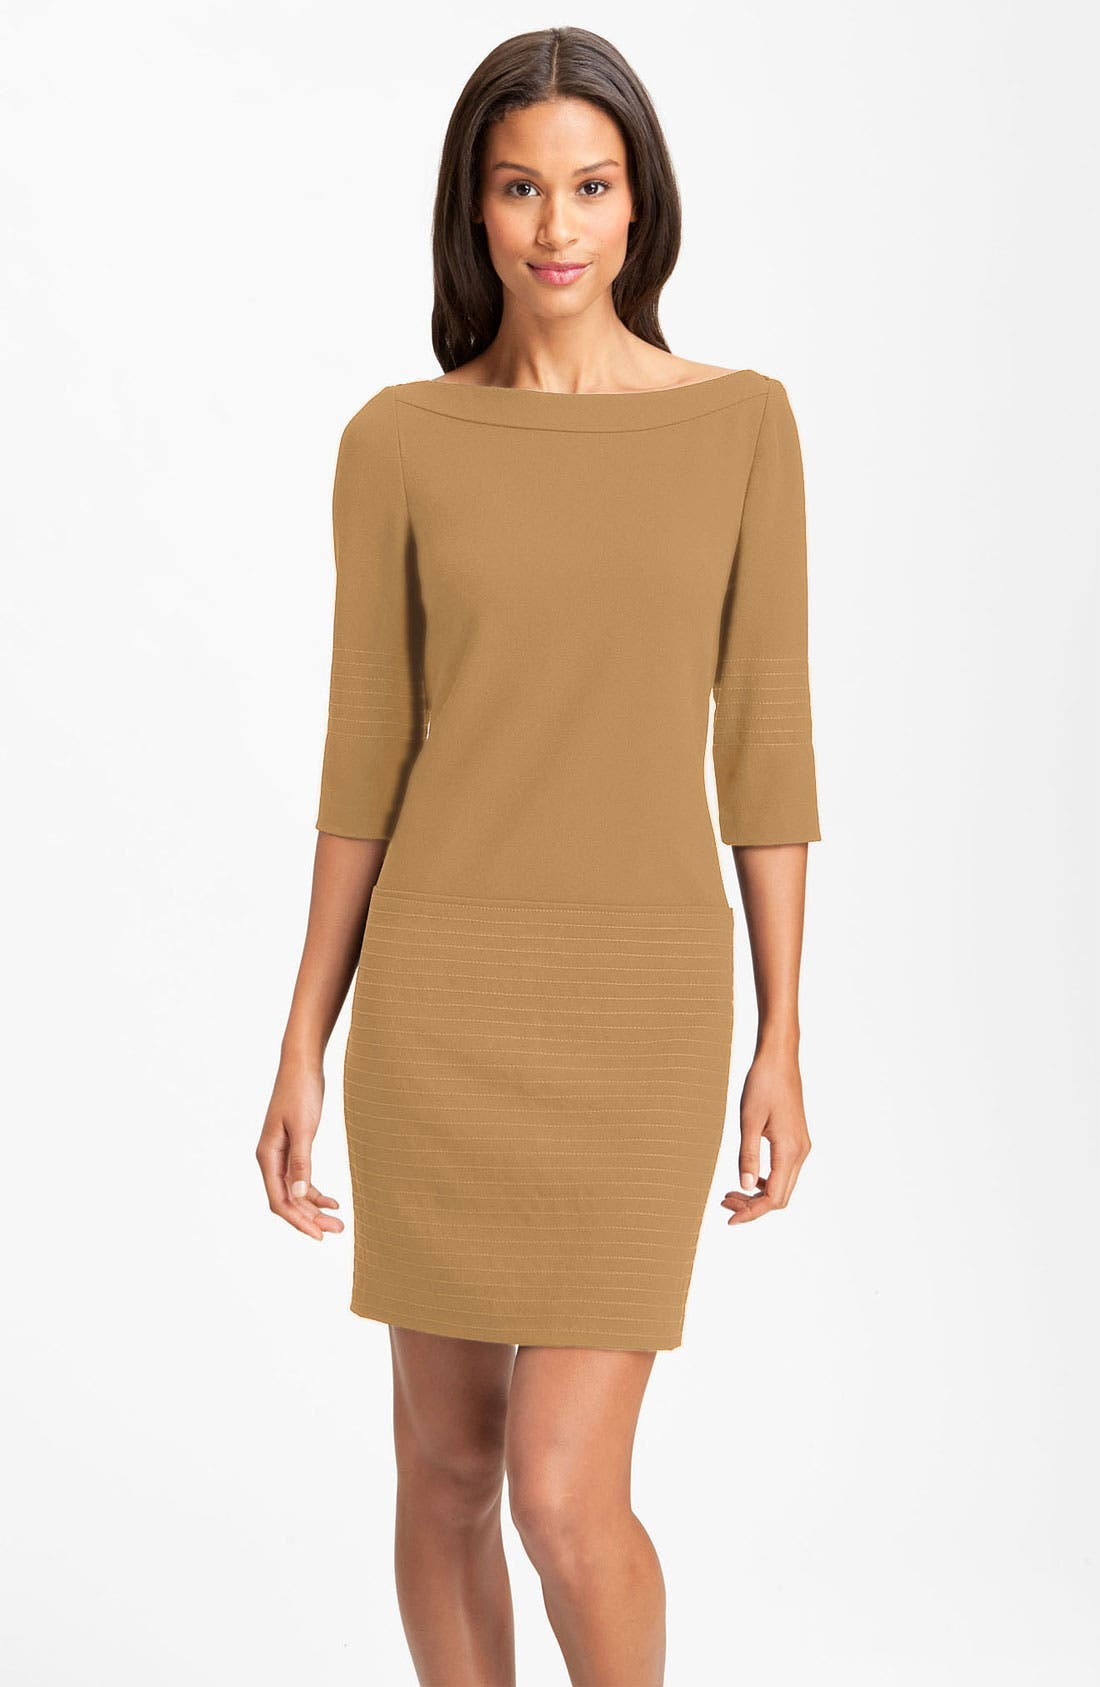 Alternate Image 1 Selected - Jessica Simpson Trapunto Stitch Shift Dress (Online Exclusive)